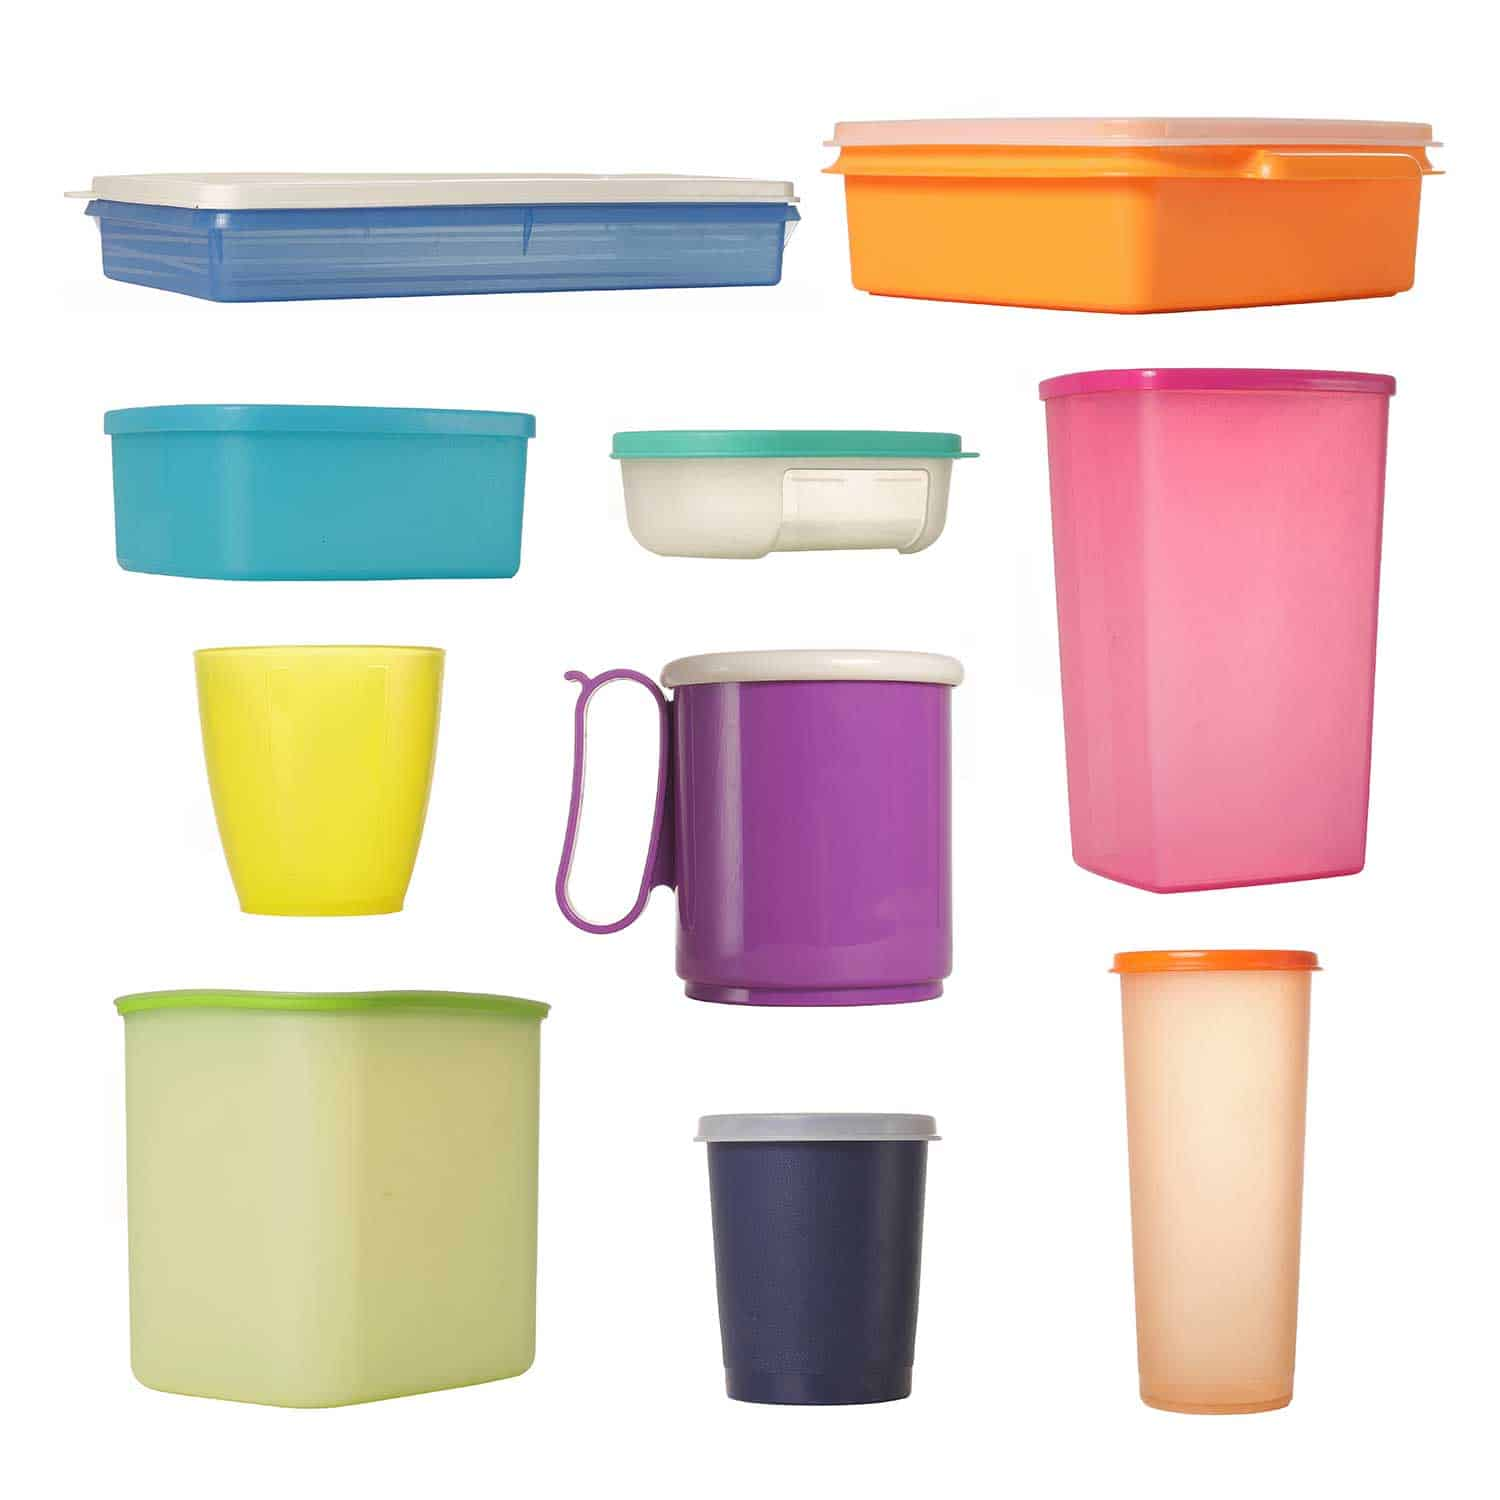 Collage of different Tupperware products